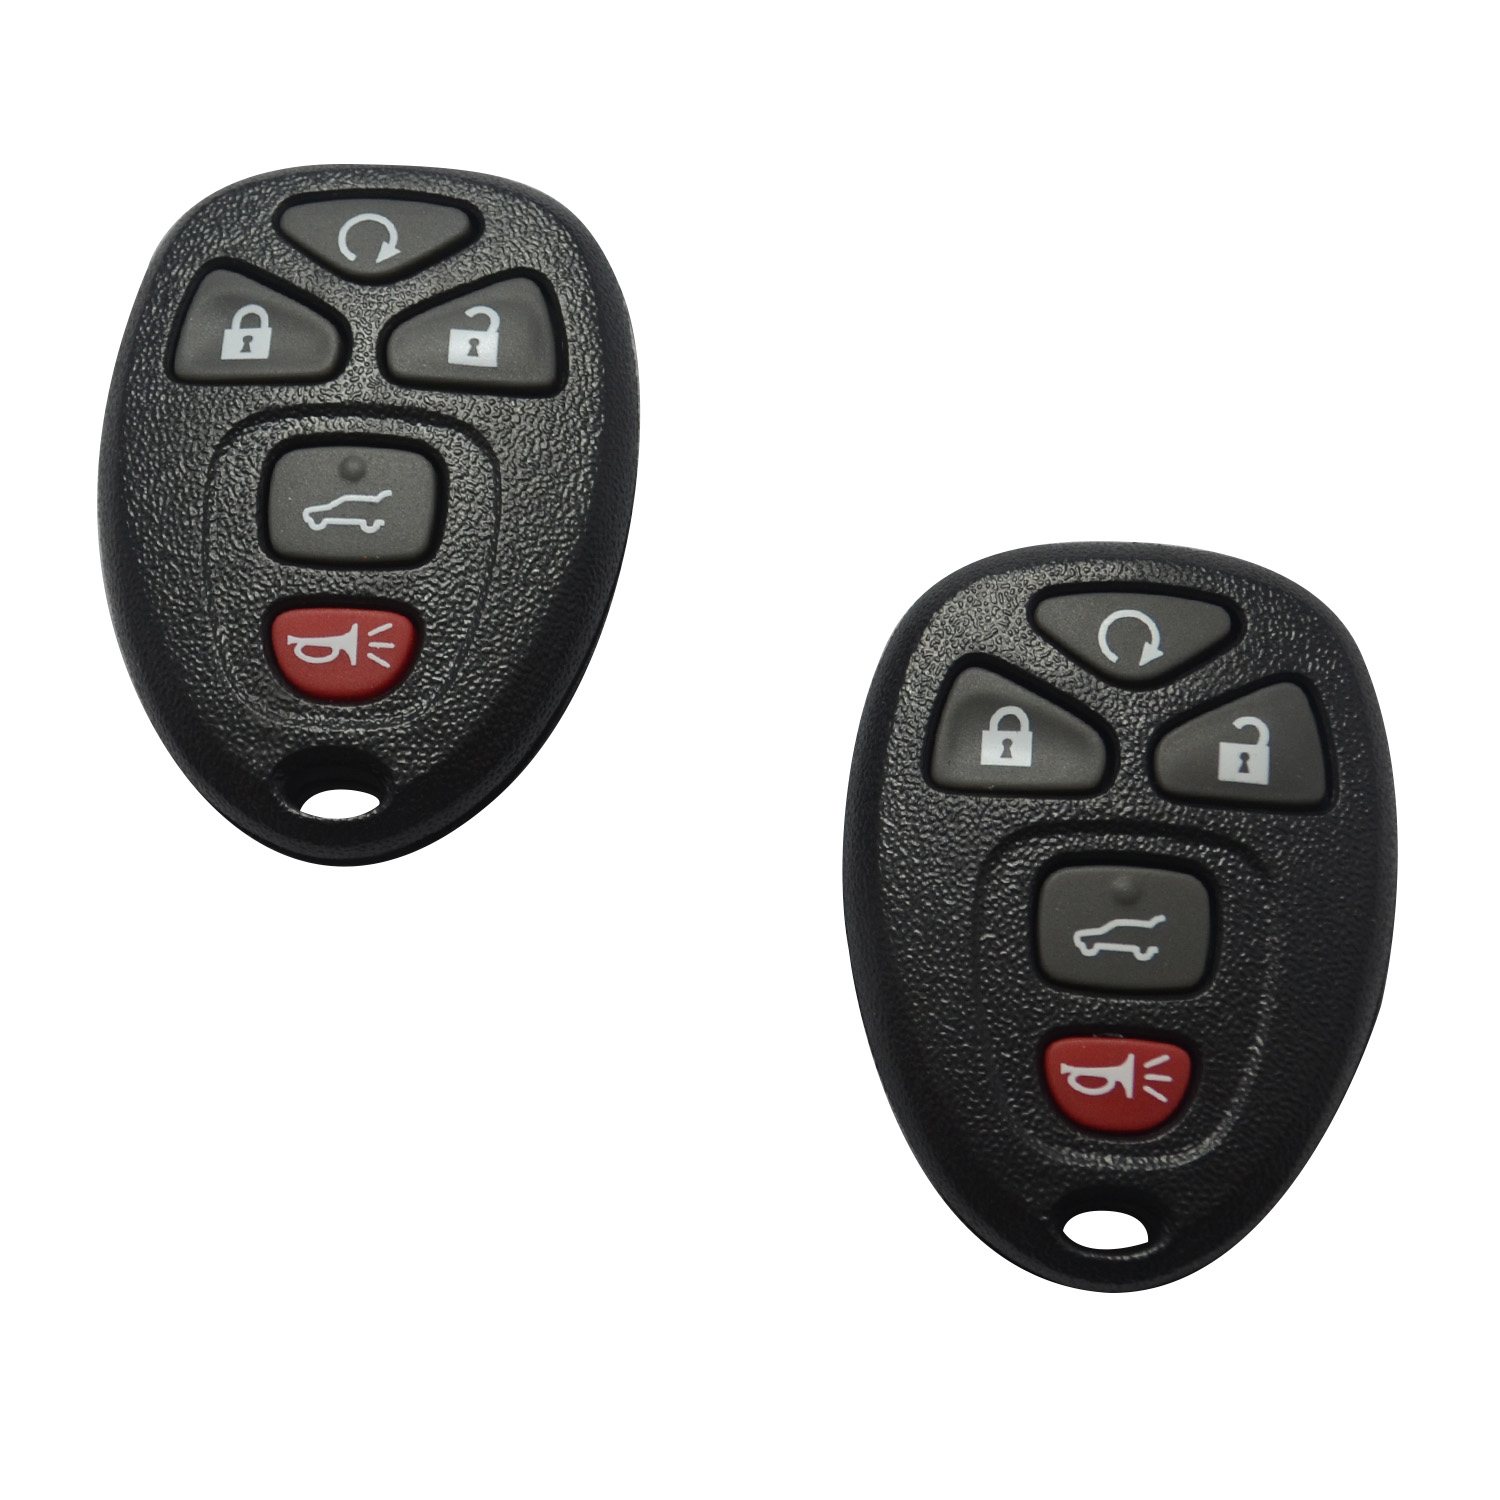 SEGADEN Replacement Key Shell fit for FORD 4 Button Keyless Entry Remote Key Case Fob PG730B